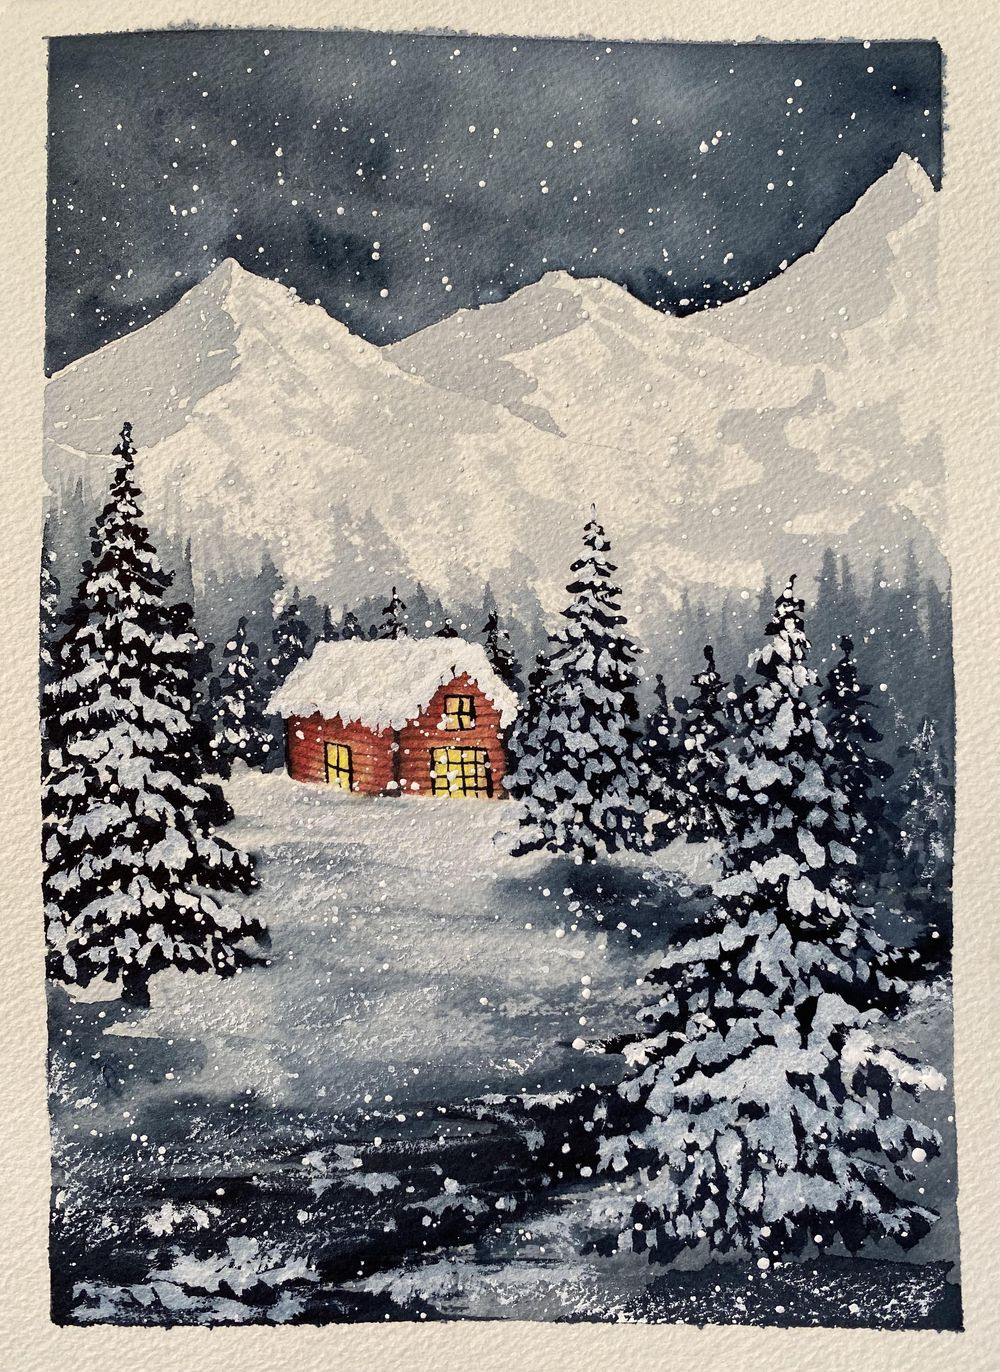 SnowyChristmas - image 1 - student project